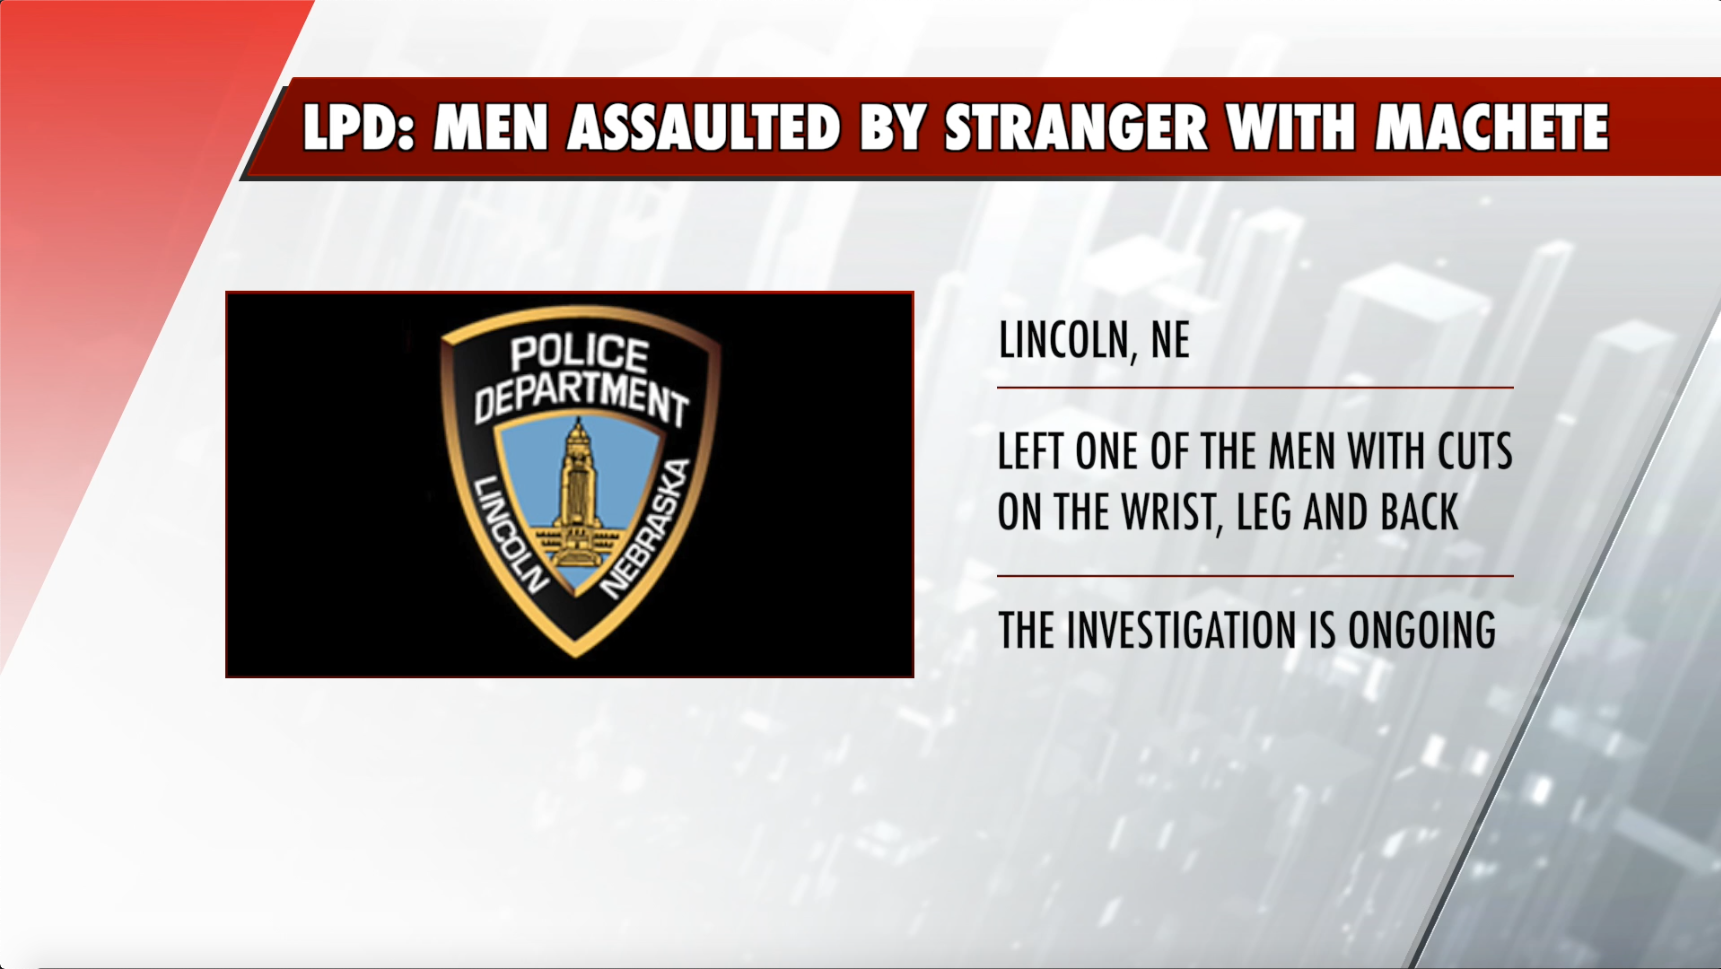 Two men assaulted, while drinking, by stranger with machete